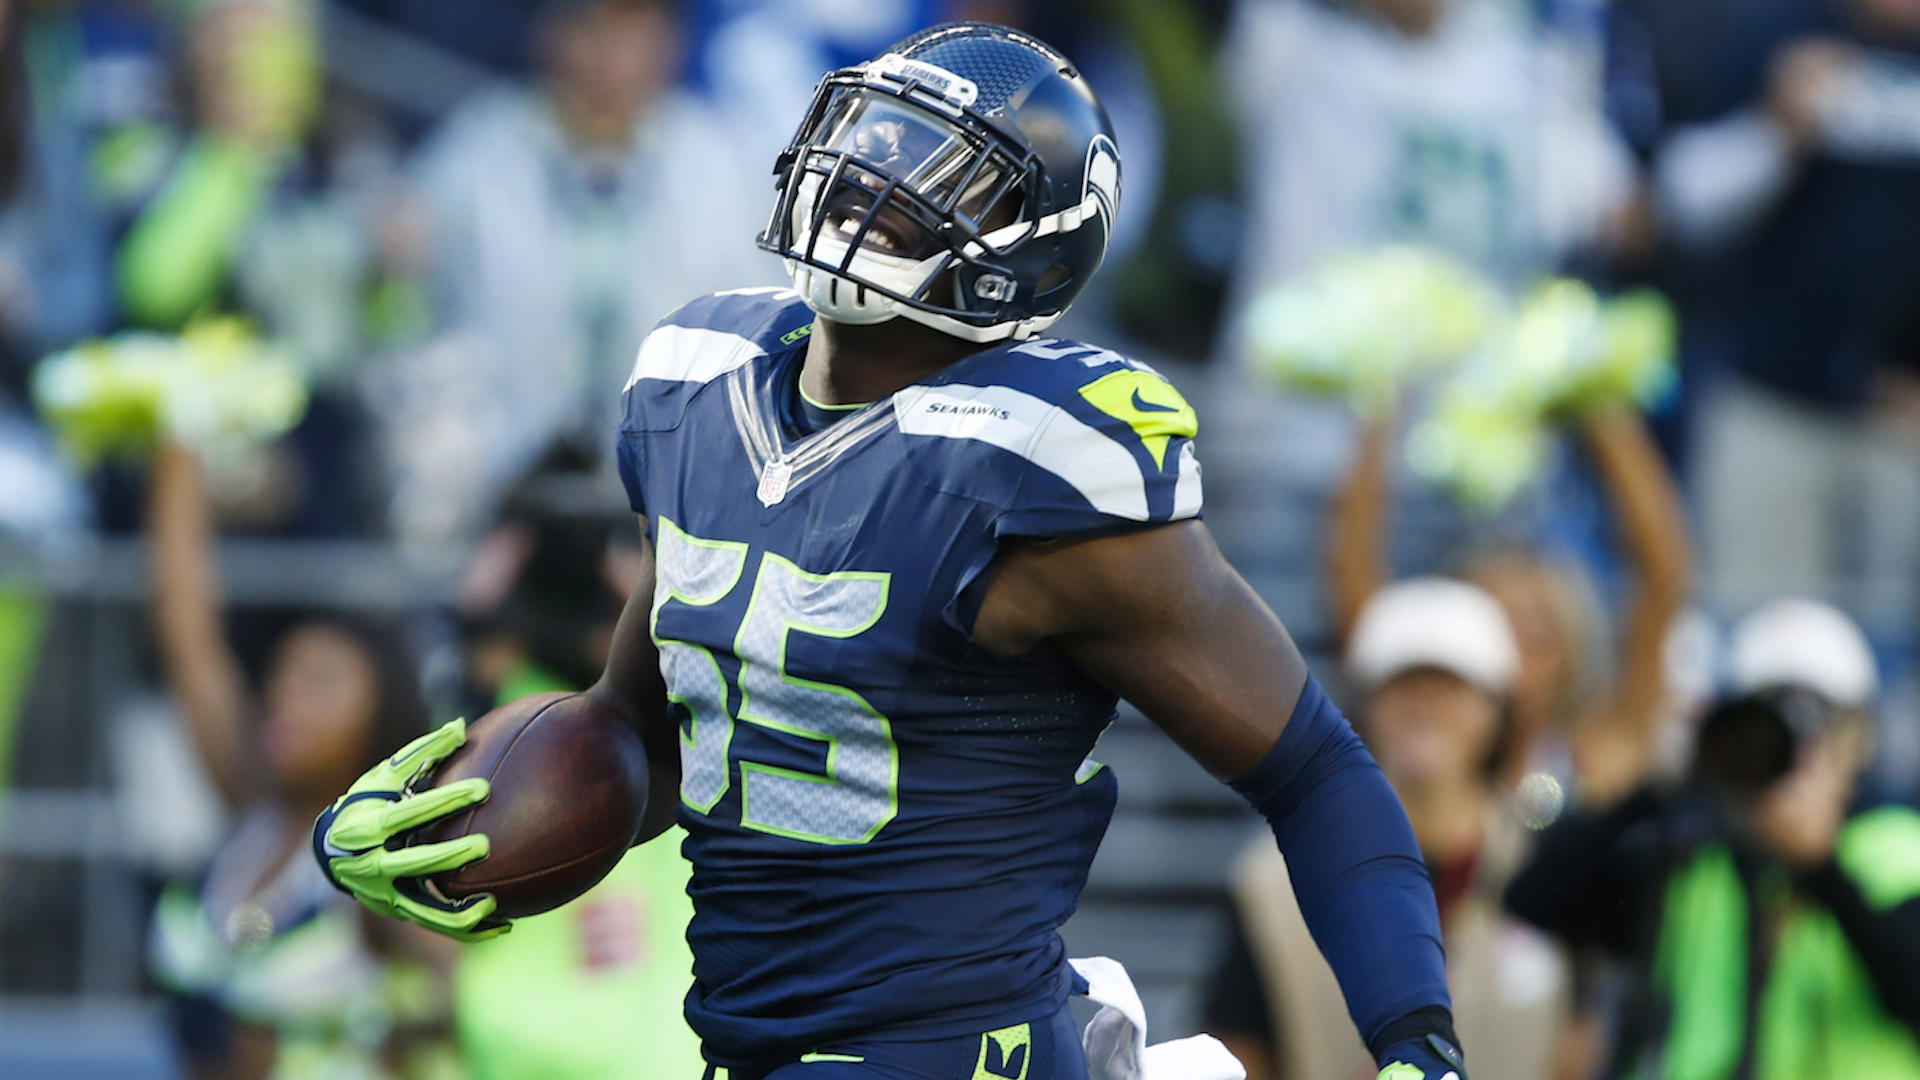 Seahawks trade Frank Clark to Chiefs, shaking up 2019 NFL Draft by adding No. 29 pick